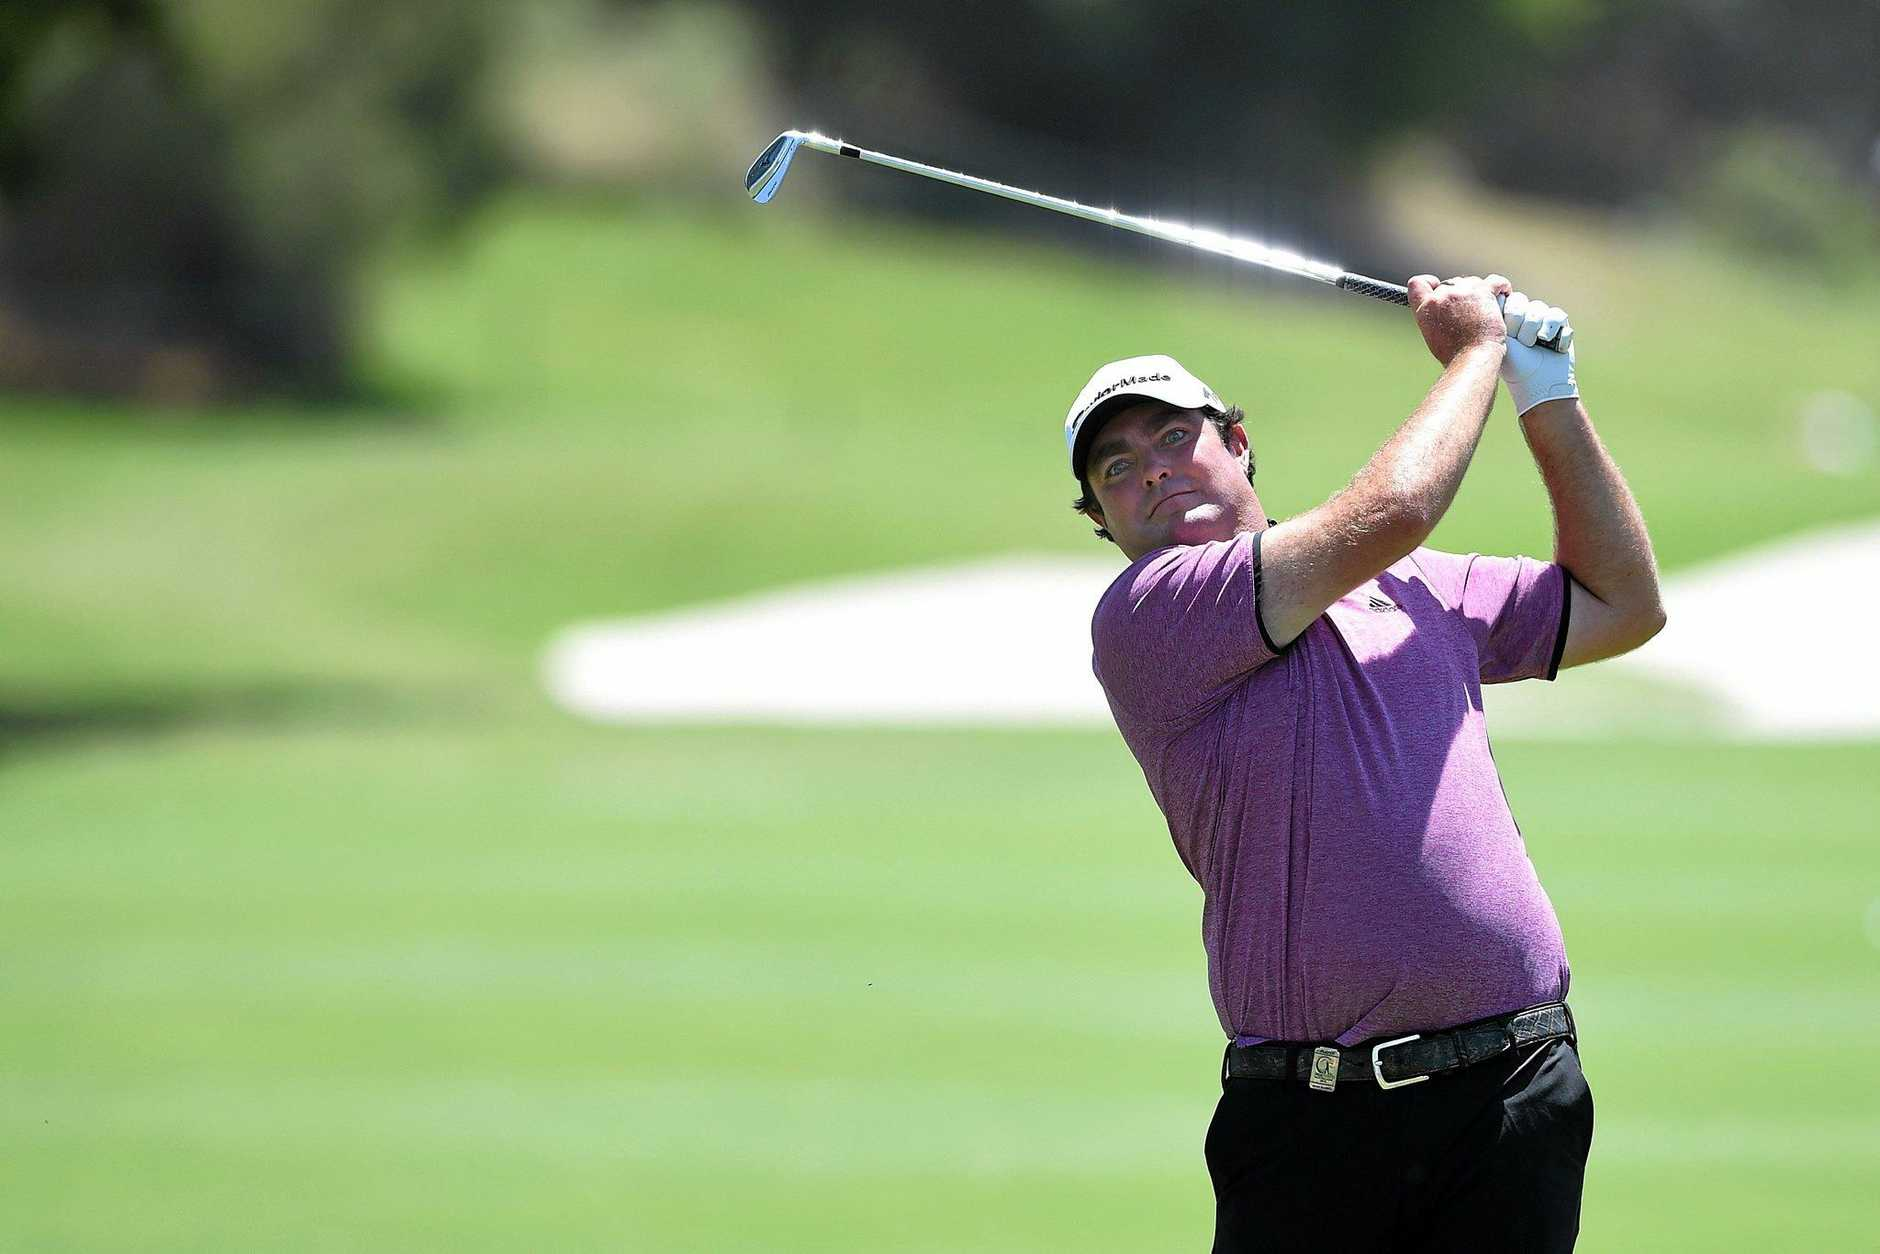 BIG TEST: Steven Bowditch will compete on the difficult Oakmont course in the US Open.